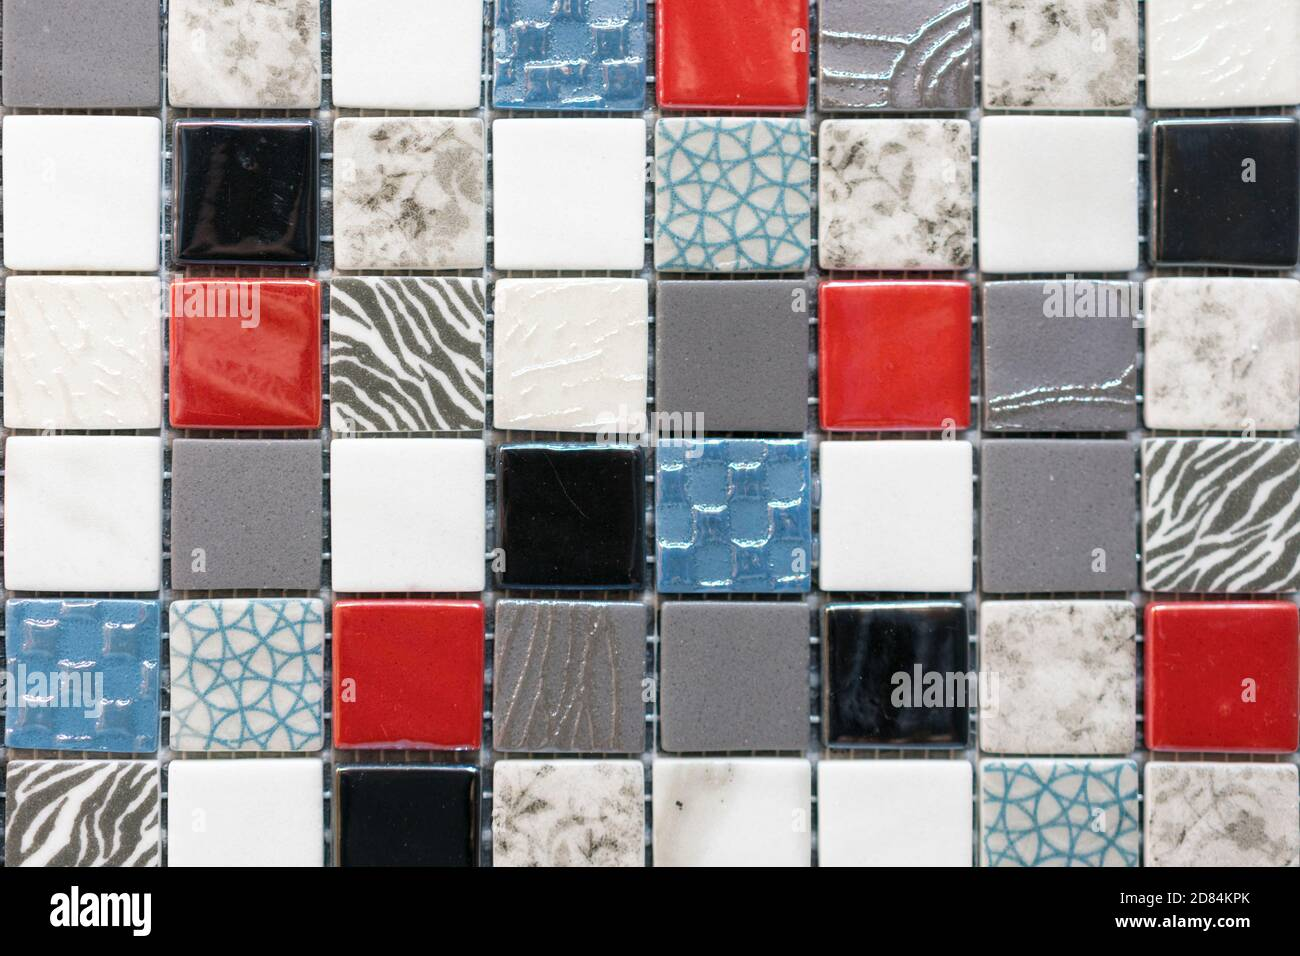 Ceramic Mosaic Tiles With White And Brown And Red Embossed Squares To Decorate The Kitchen Bathroom Or Pool Mosaic Of Brown Marble In The Form Of Stock Photo Alamy